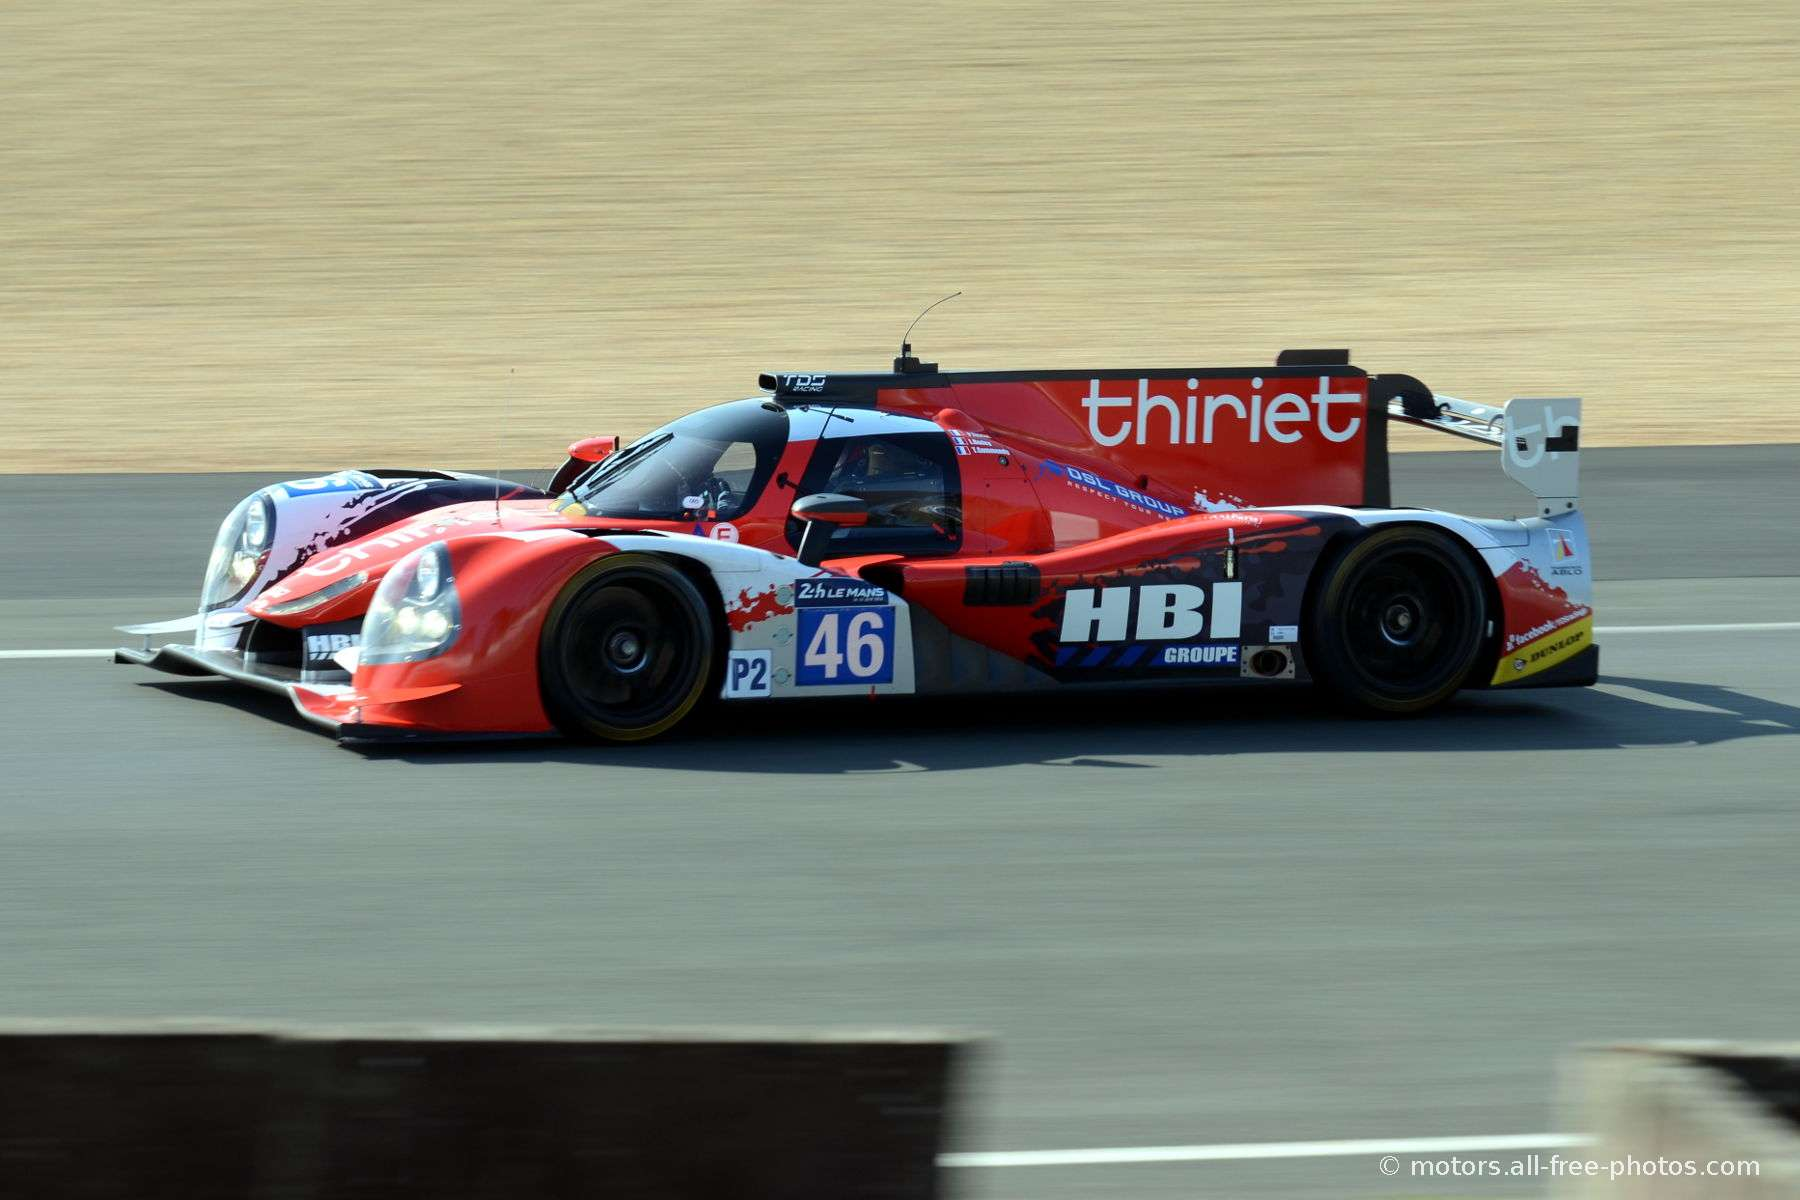 Ligier JS P2 - Nissan - Team Thiriet by TDS Racing